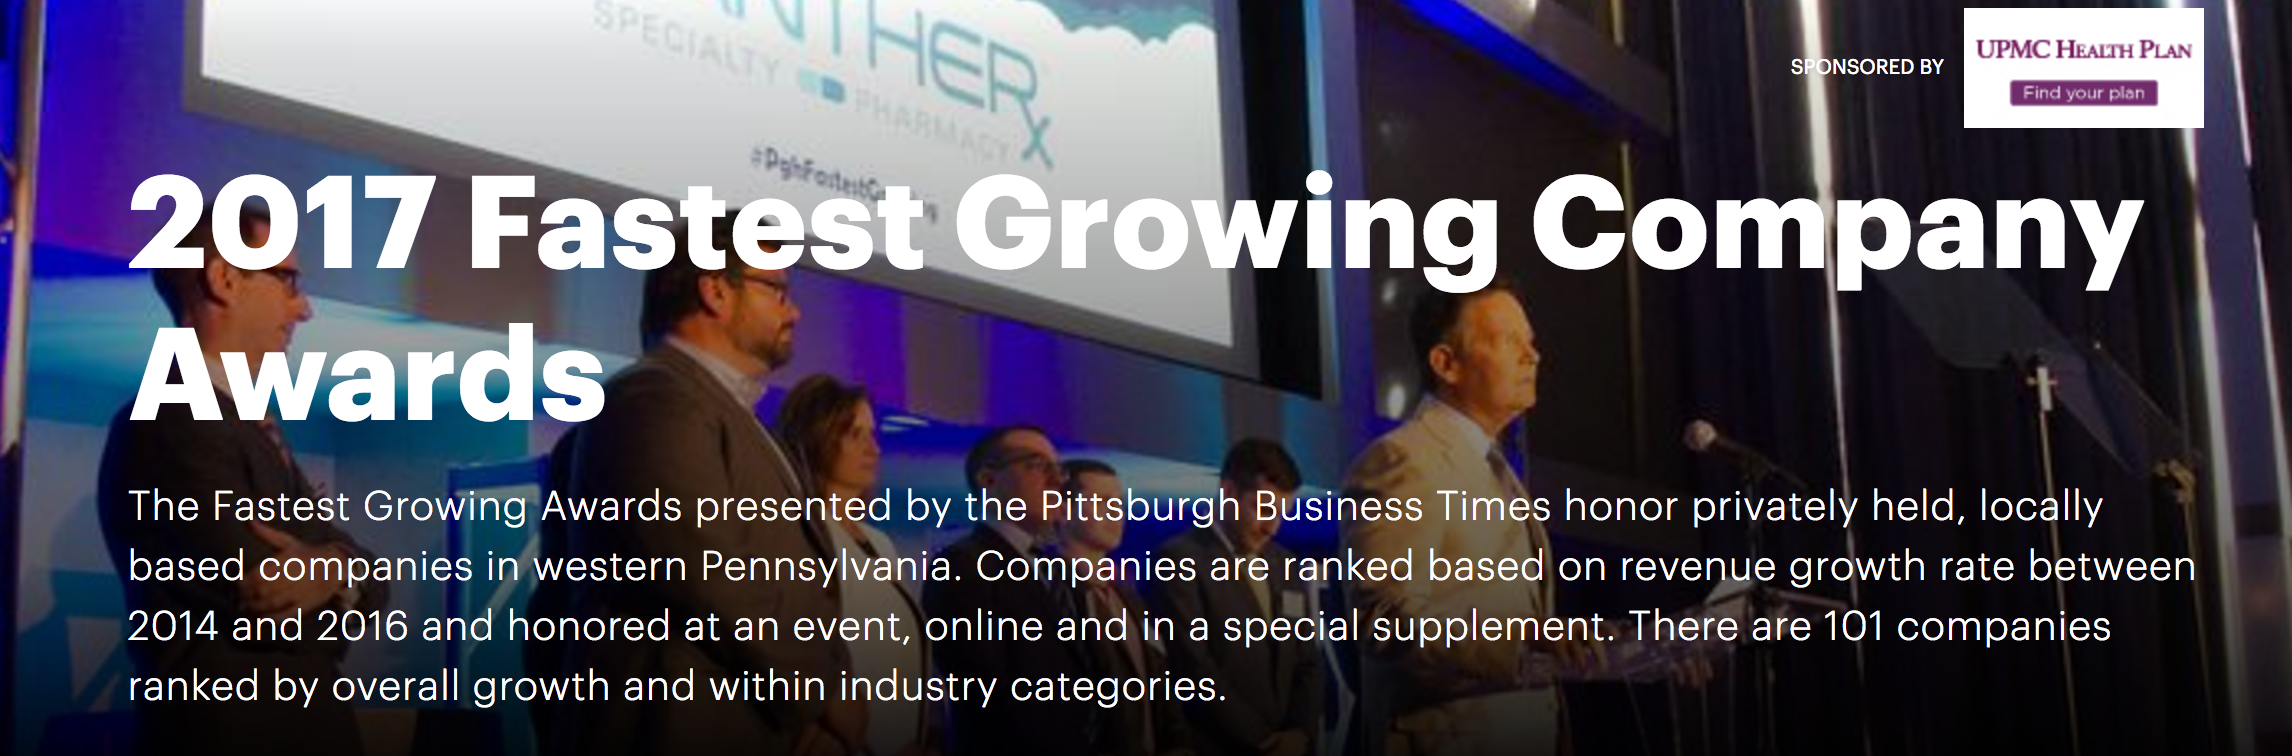 The Wilson Group tenth on fastest-growing companies list in Pittsburgh